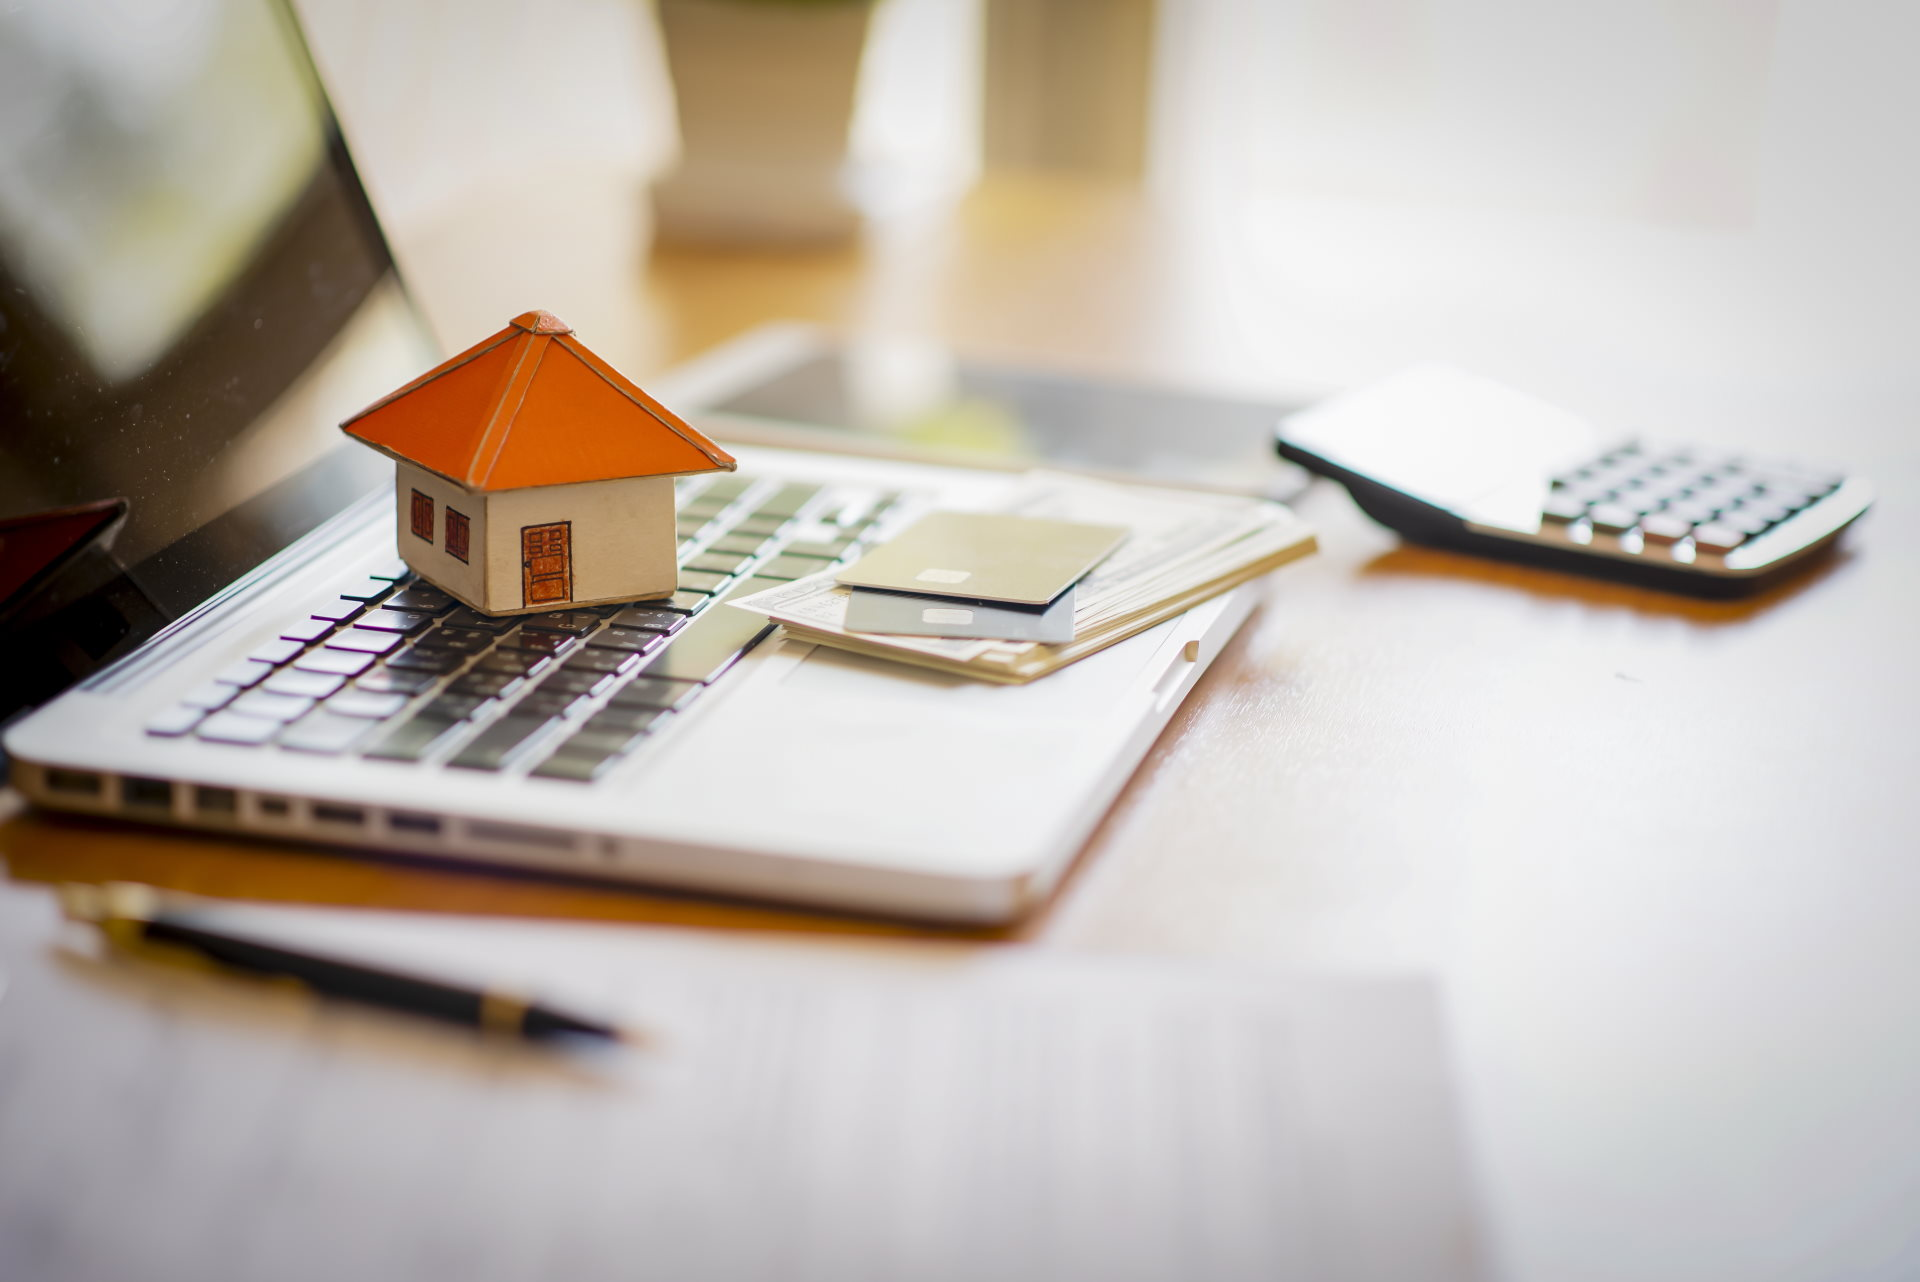 A laptop, a calculator, and financial documents along with a small house model.